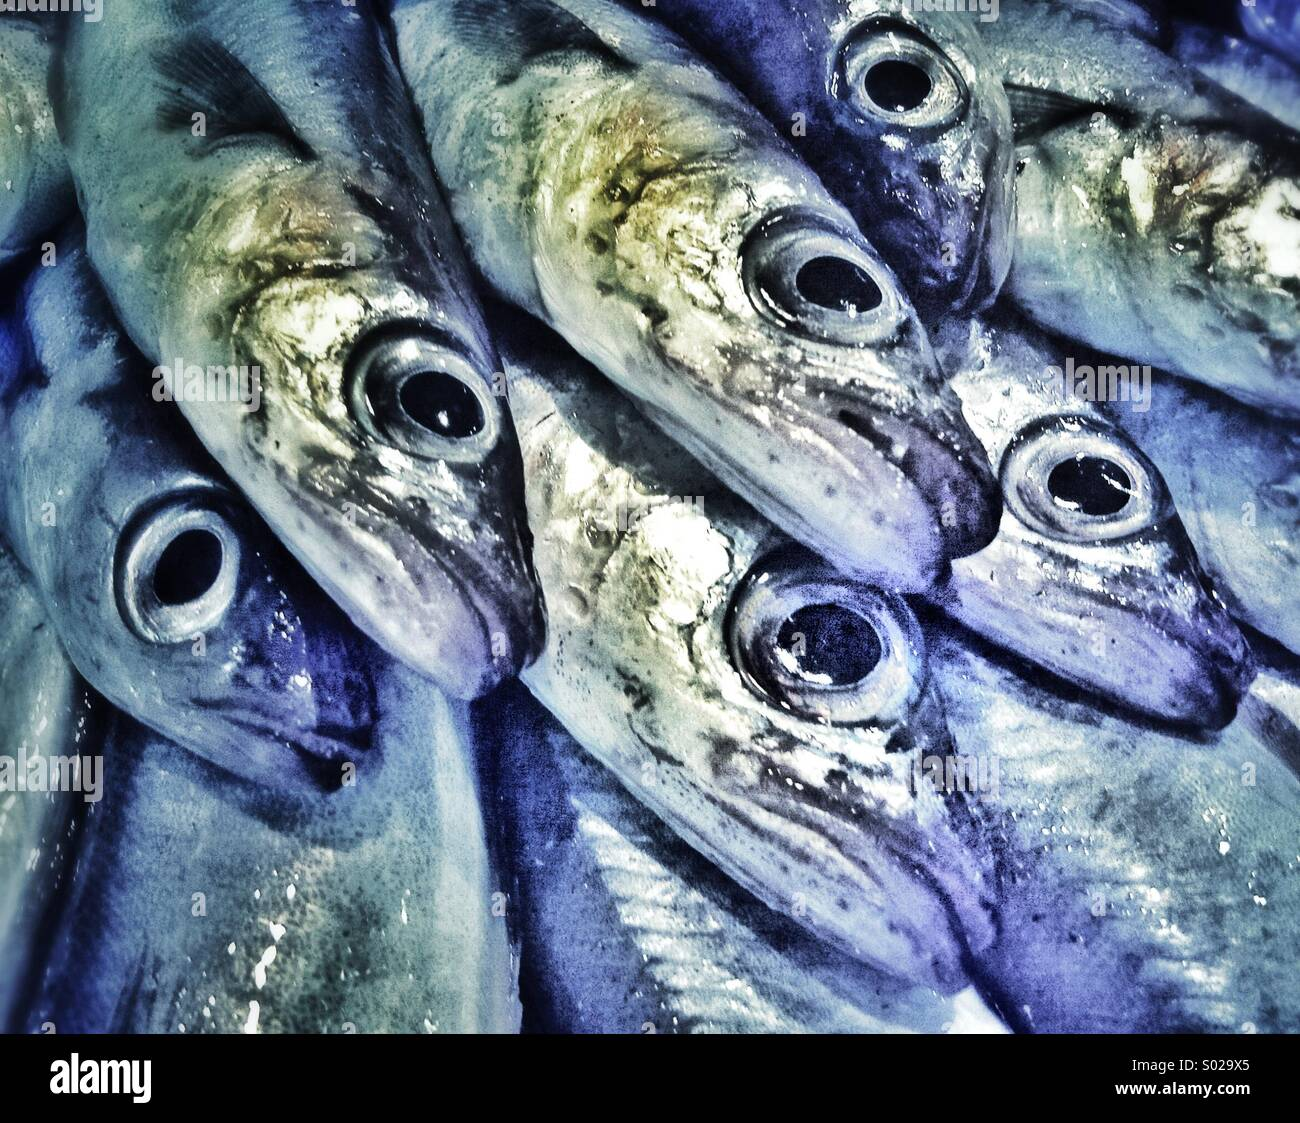 fresh-sardines-for-sale-in-a-barcelona-f